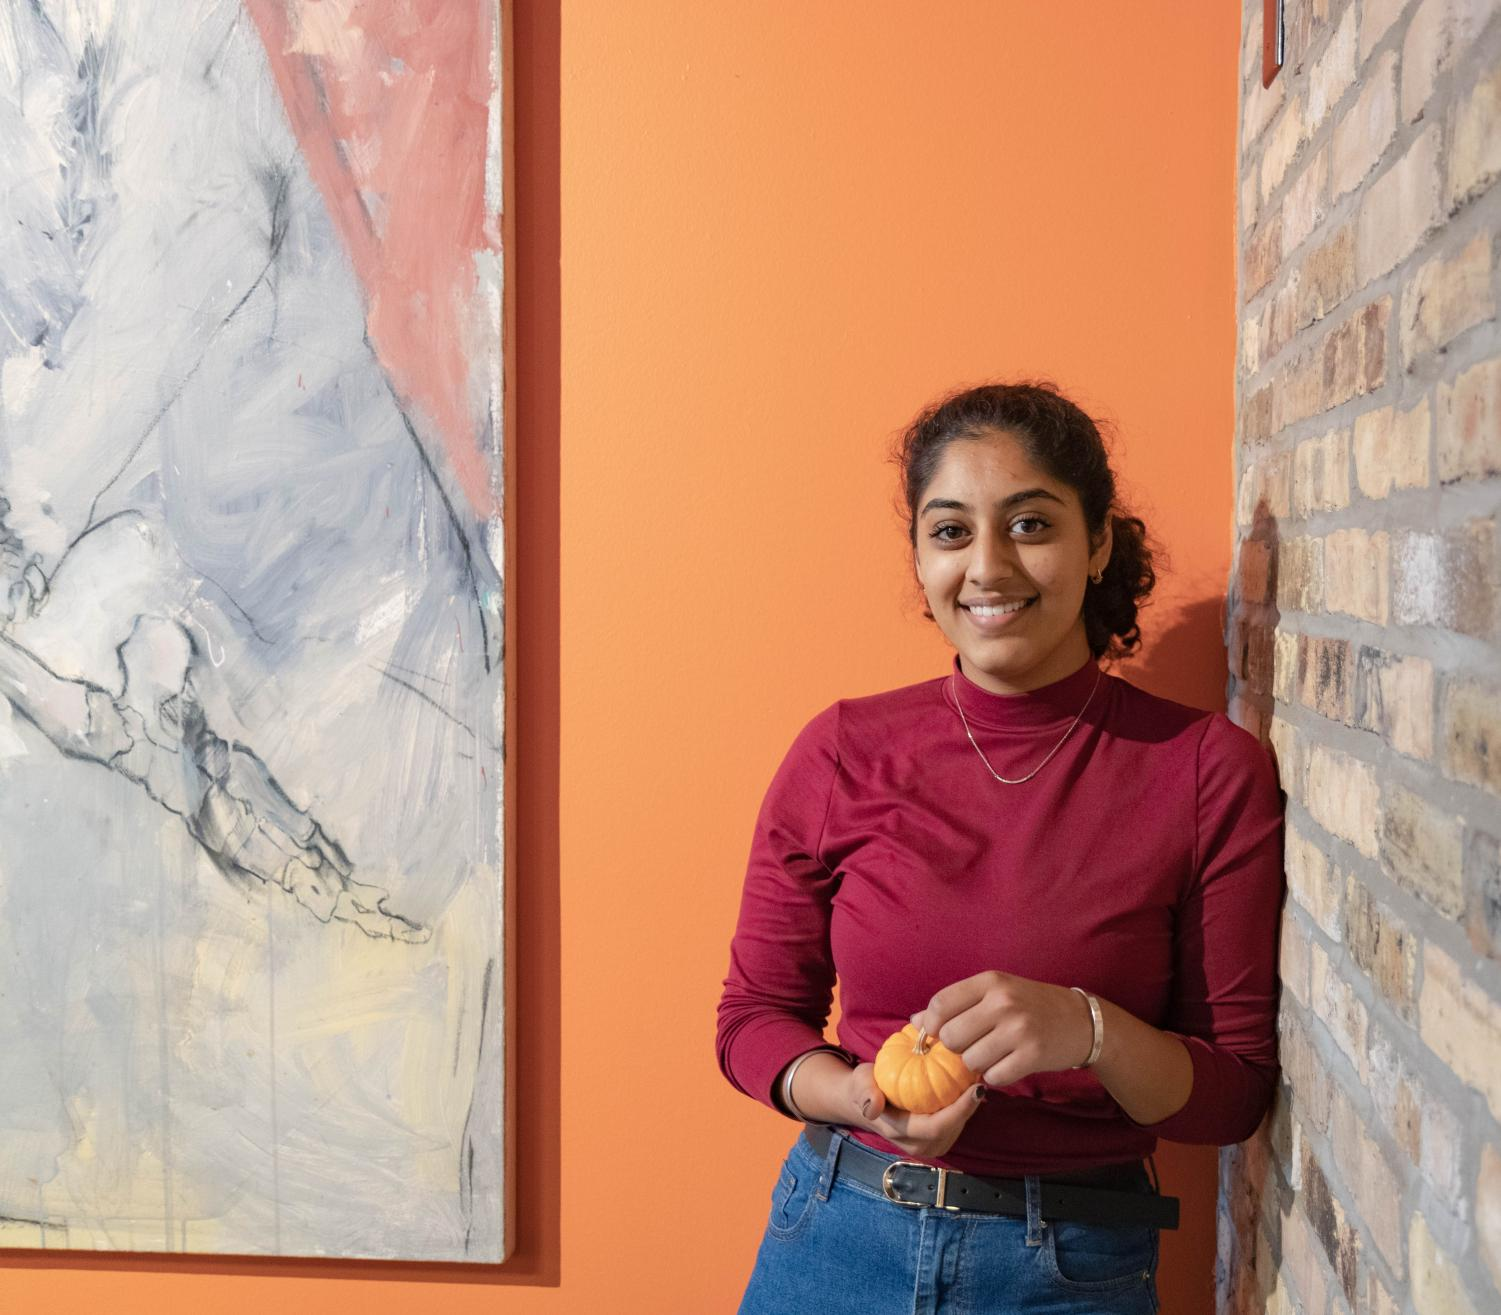 Simran Armstrong, a freshman in the College of Health Sciences, spent her fall break decompressing from midterm stress.